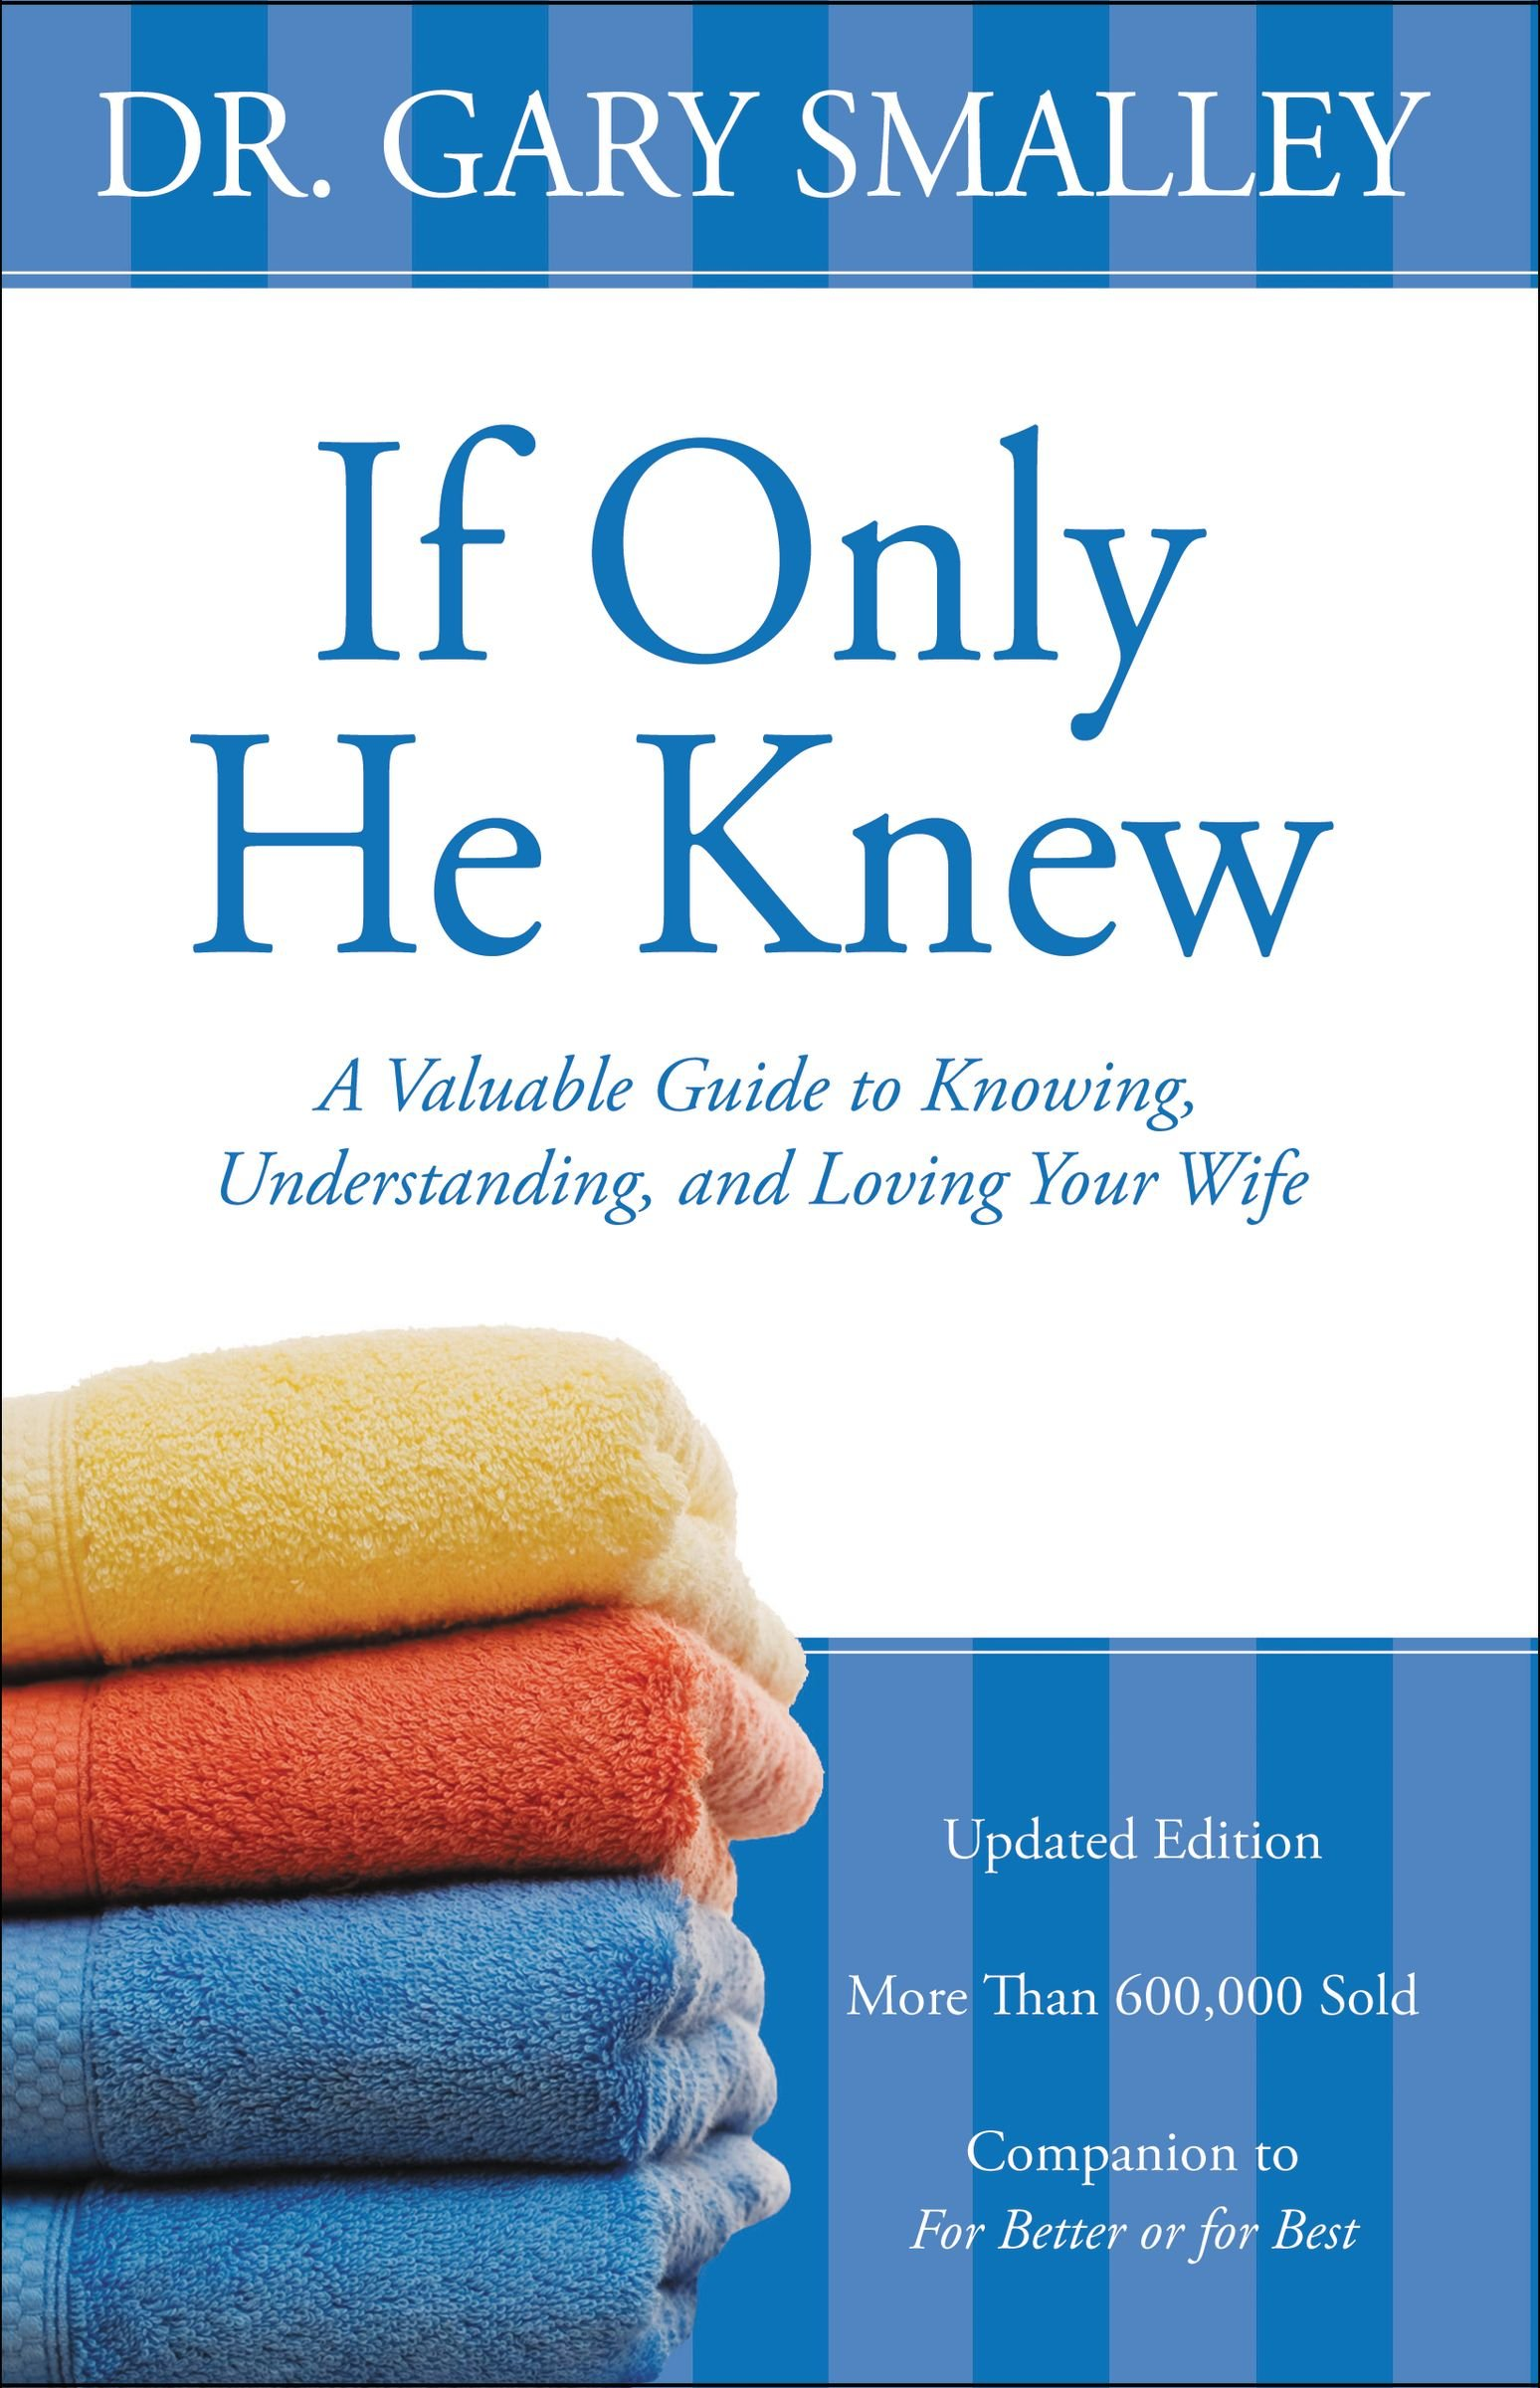 if-only-he-knew-a-valuable-guide-to-knowing-understanding-and-loving-your-wife